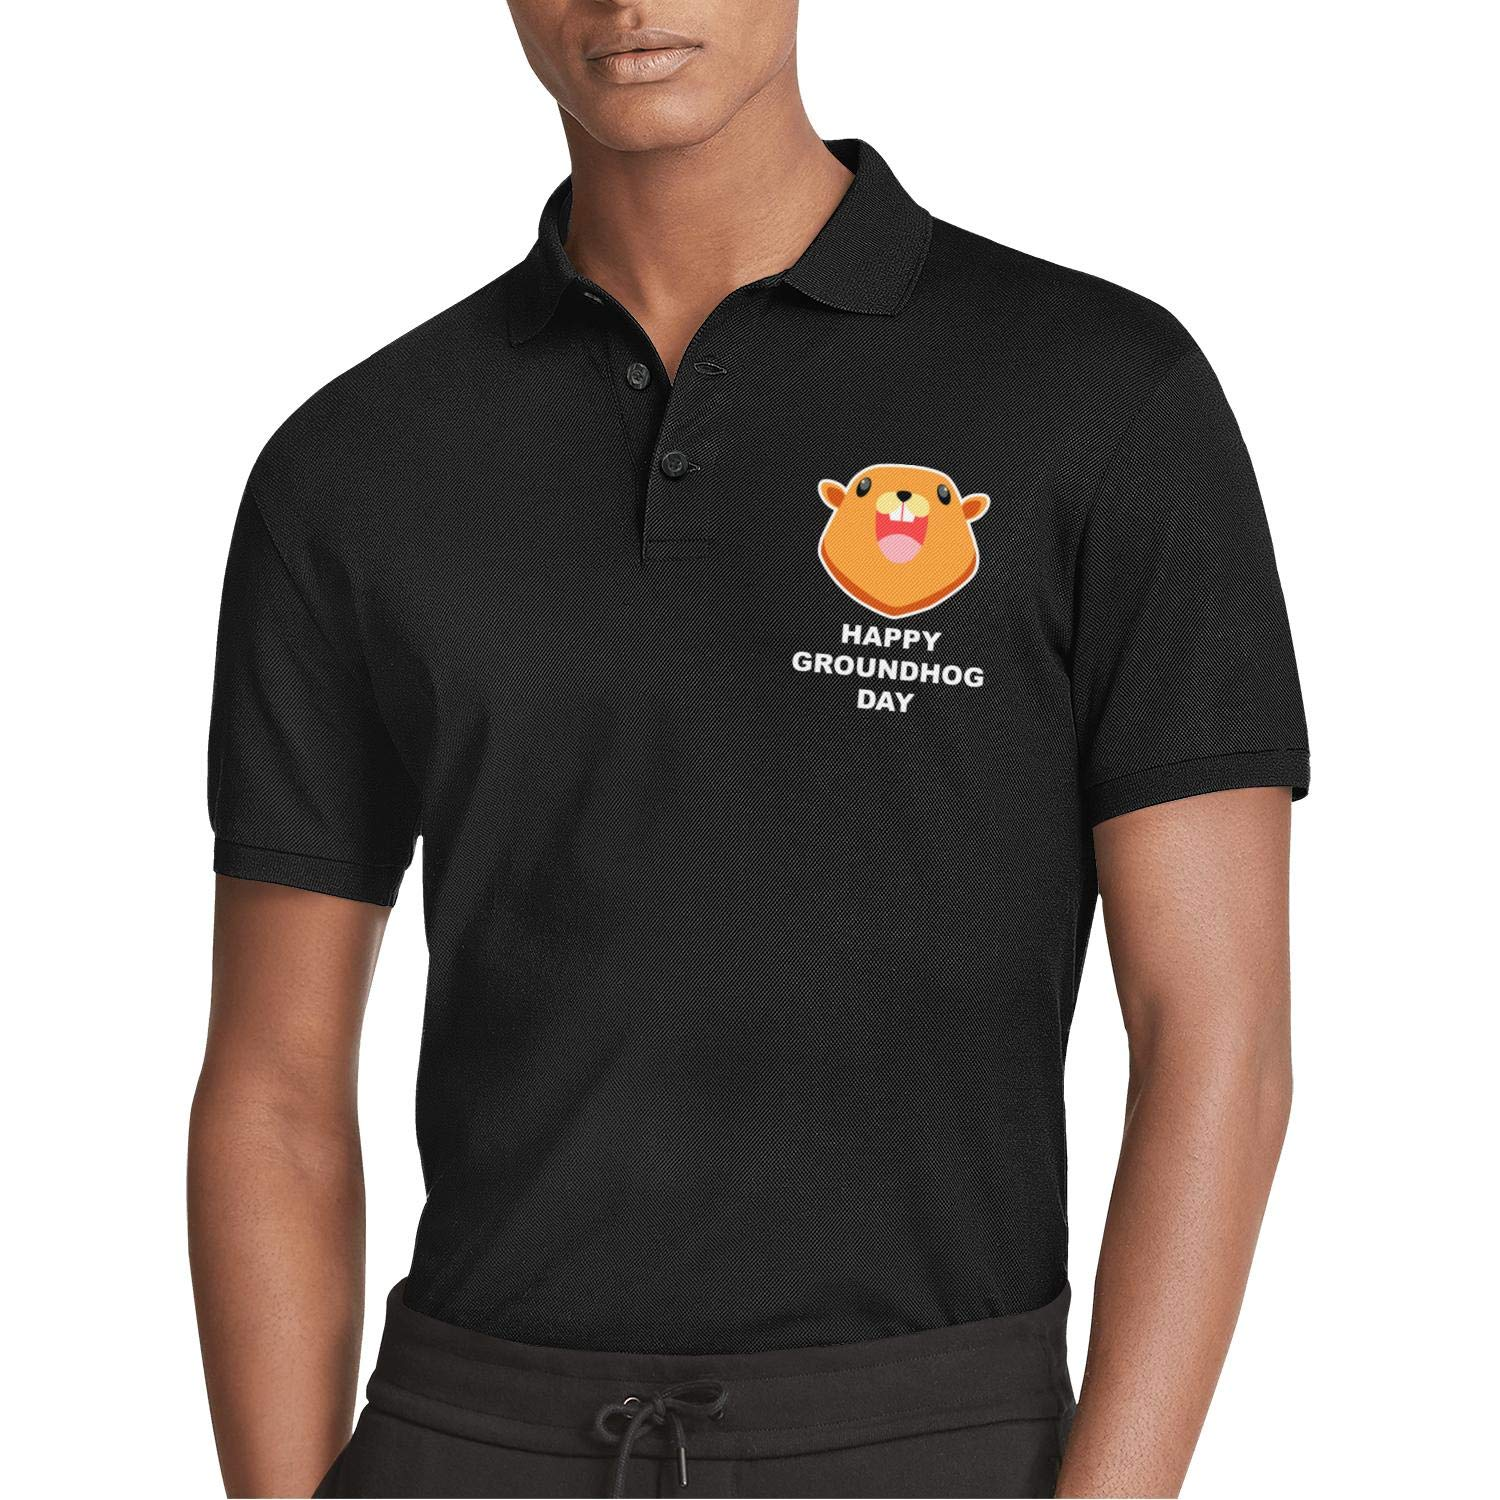 AIKYAN Happy Groundhog Day Cartoon face Printed Mens Polo Shirt Slim Fit GolfShirt